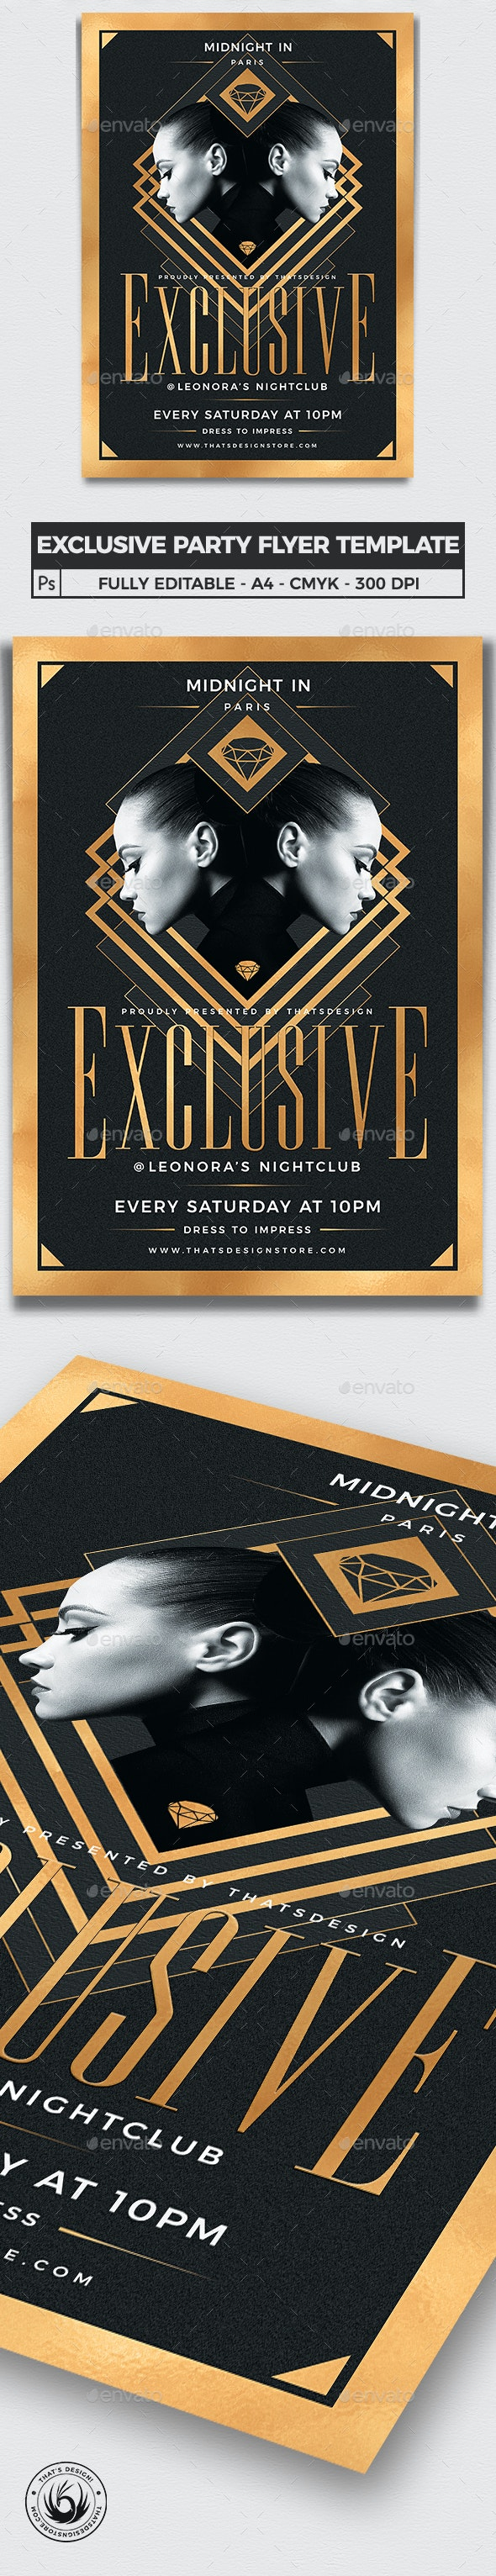 Exclusive Party Flyer Template V2 - Clubs & Parties Events